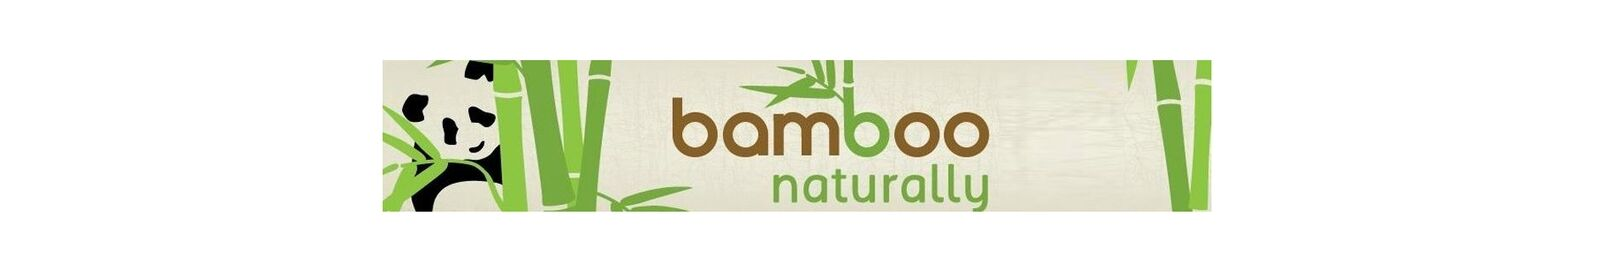 Bamboo Naturally